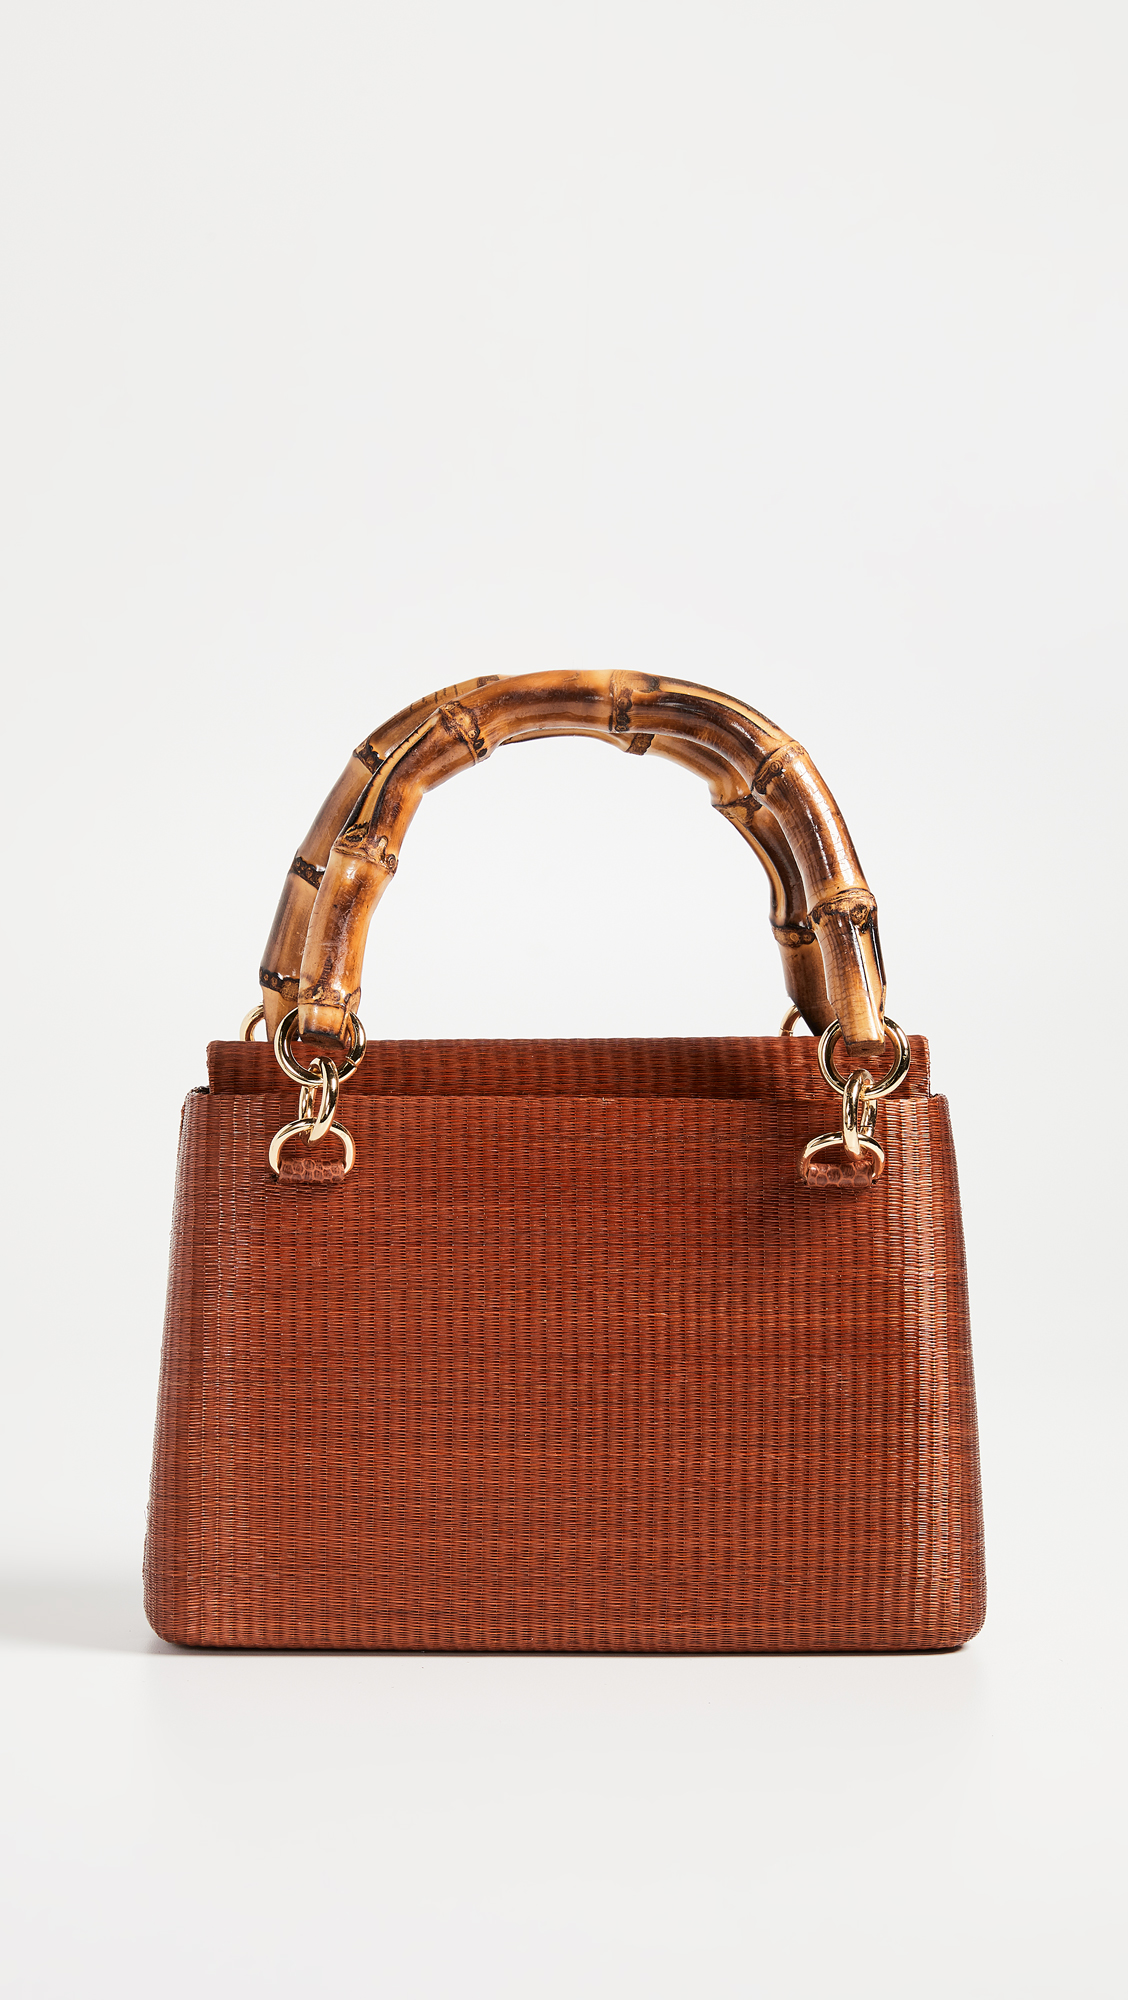 Bamboo Handle Wicker Bag